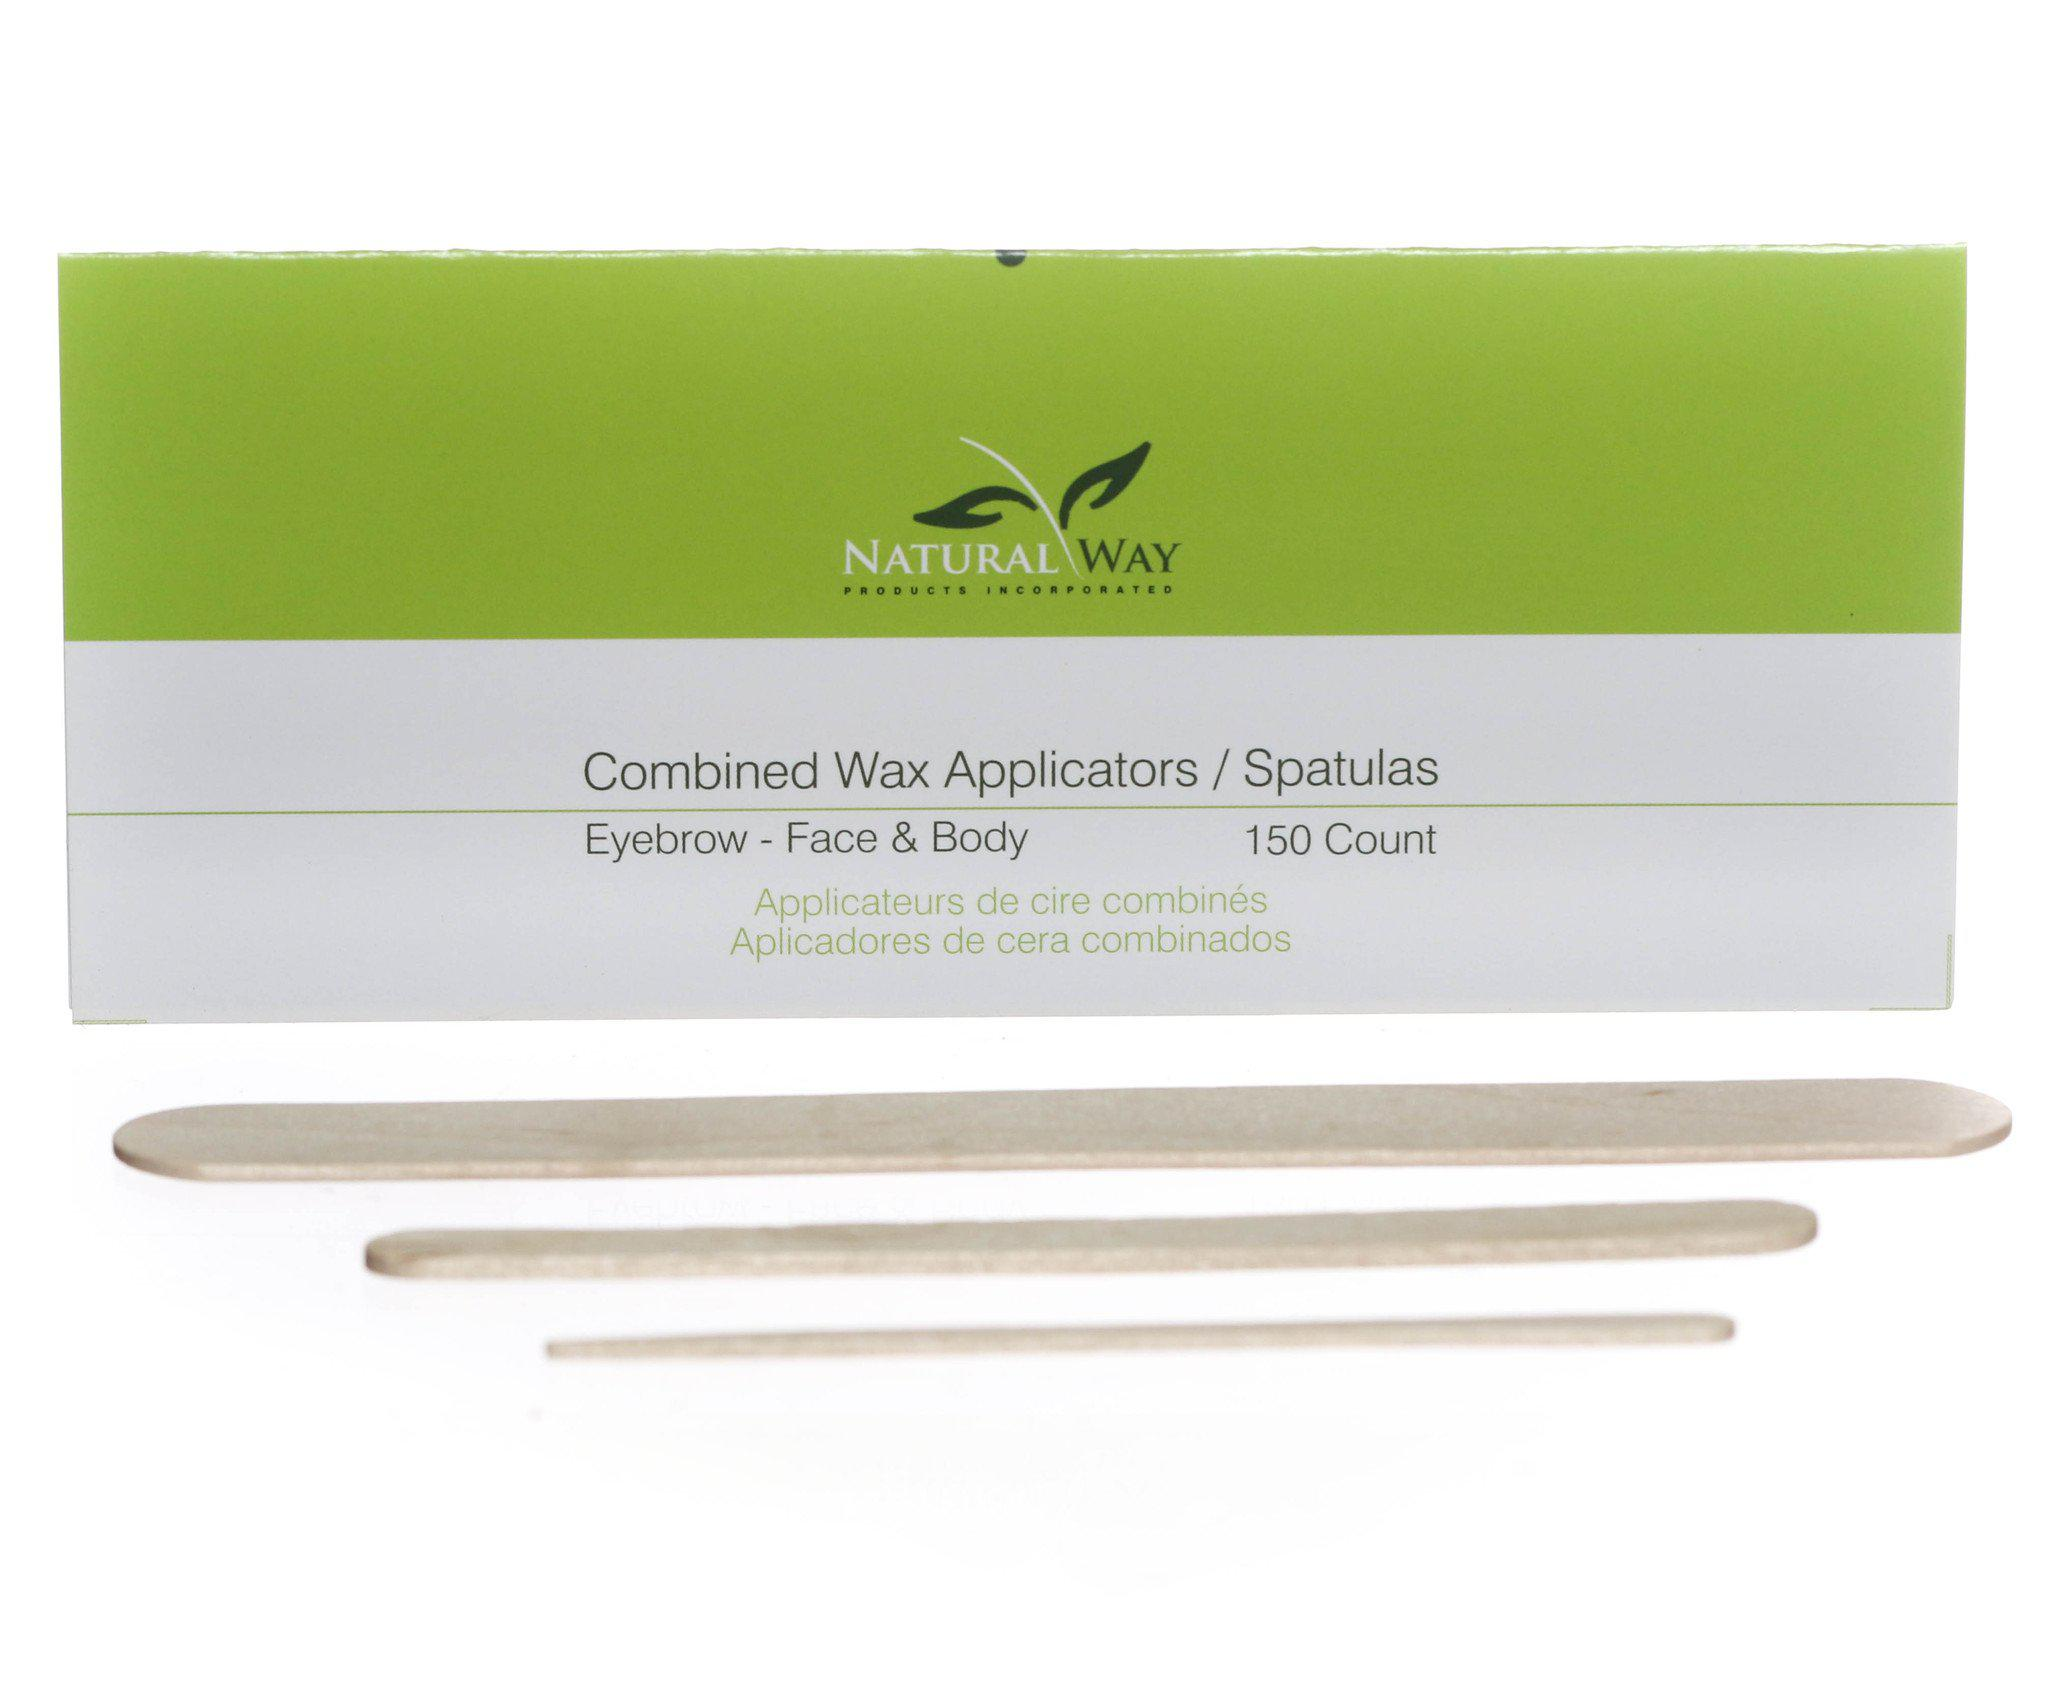 Applicators (50 Eyebrow, 50 Facial, 50 Body)